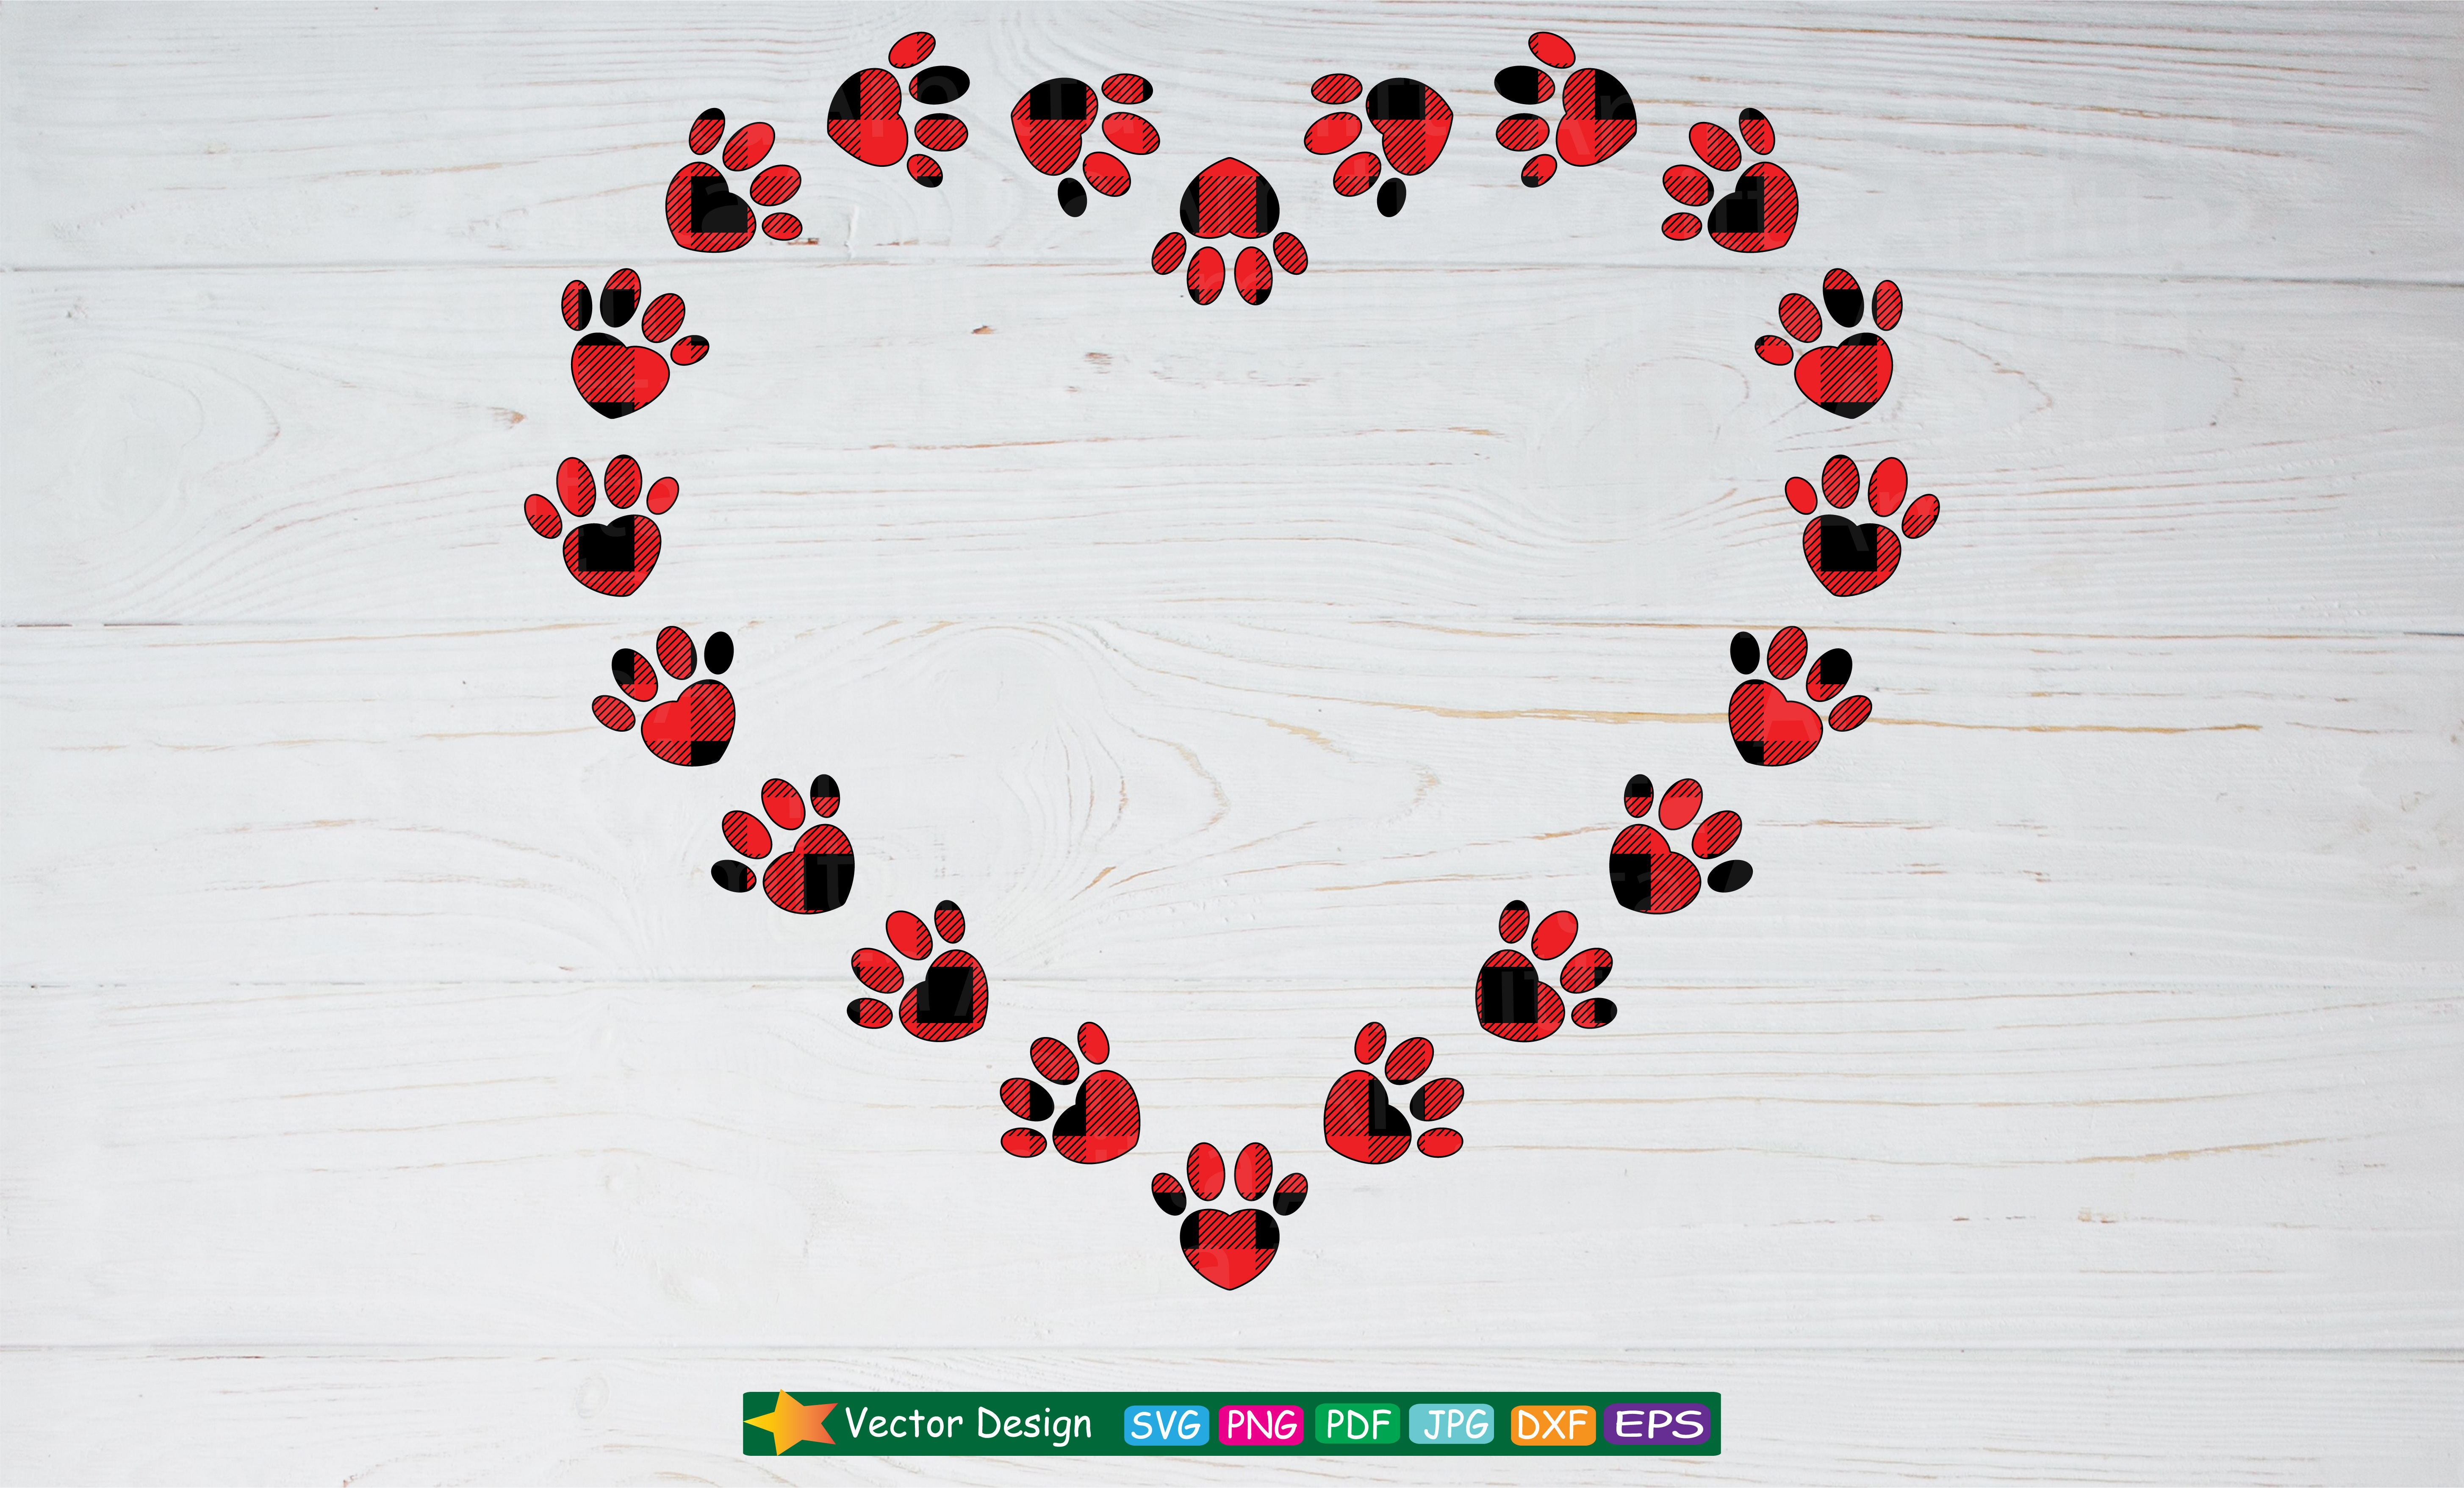 67221275 Plaid Paw Heart SVG